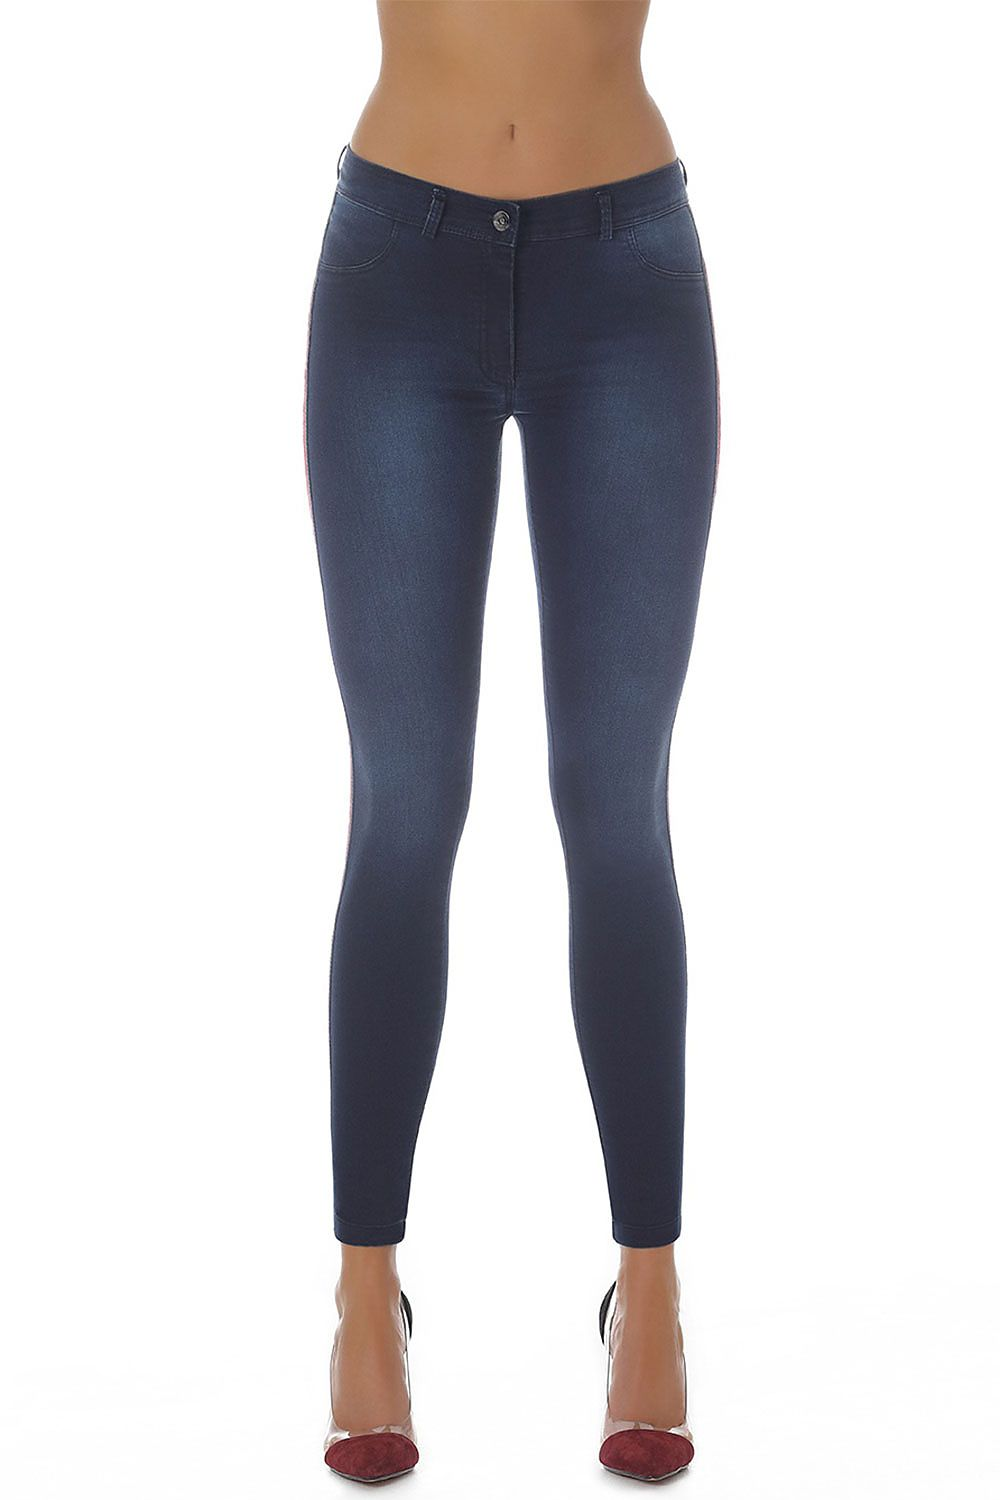 Long Leggings Model 125943 Bas Bleu Wholesale Clothing Online Women S Fashion Shoes Lingerie Underwear Matterhorn Save with 9 bas bleu offers. matterhorn wholesaler